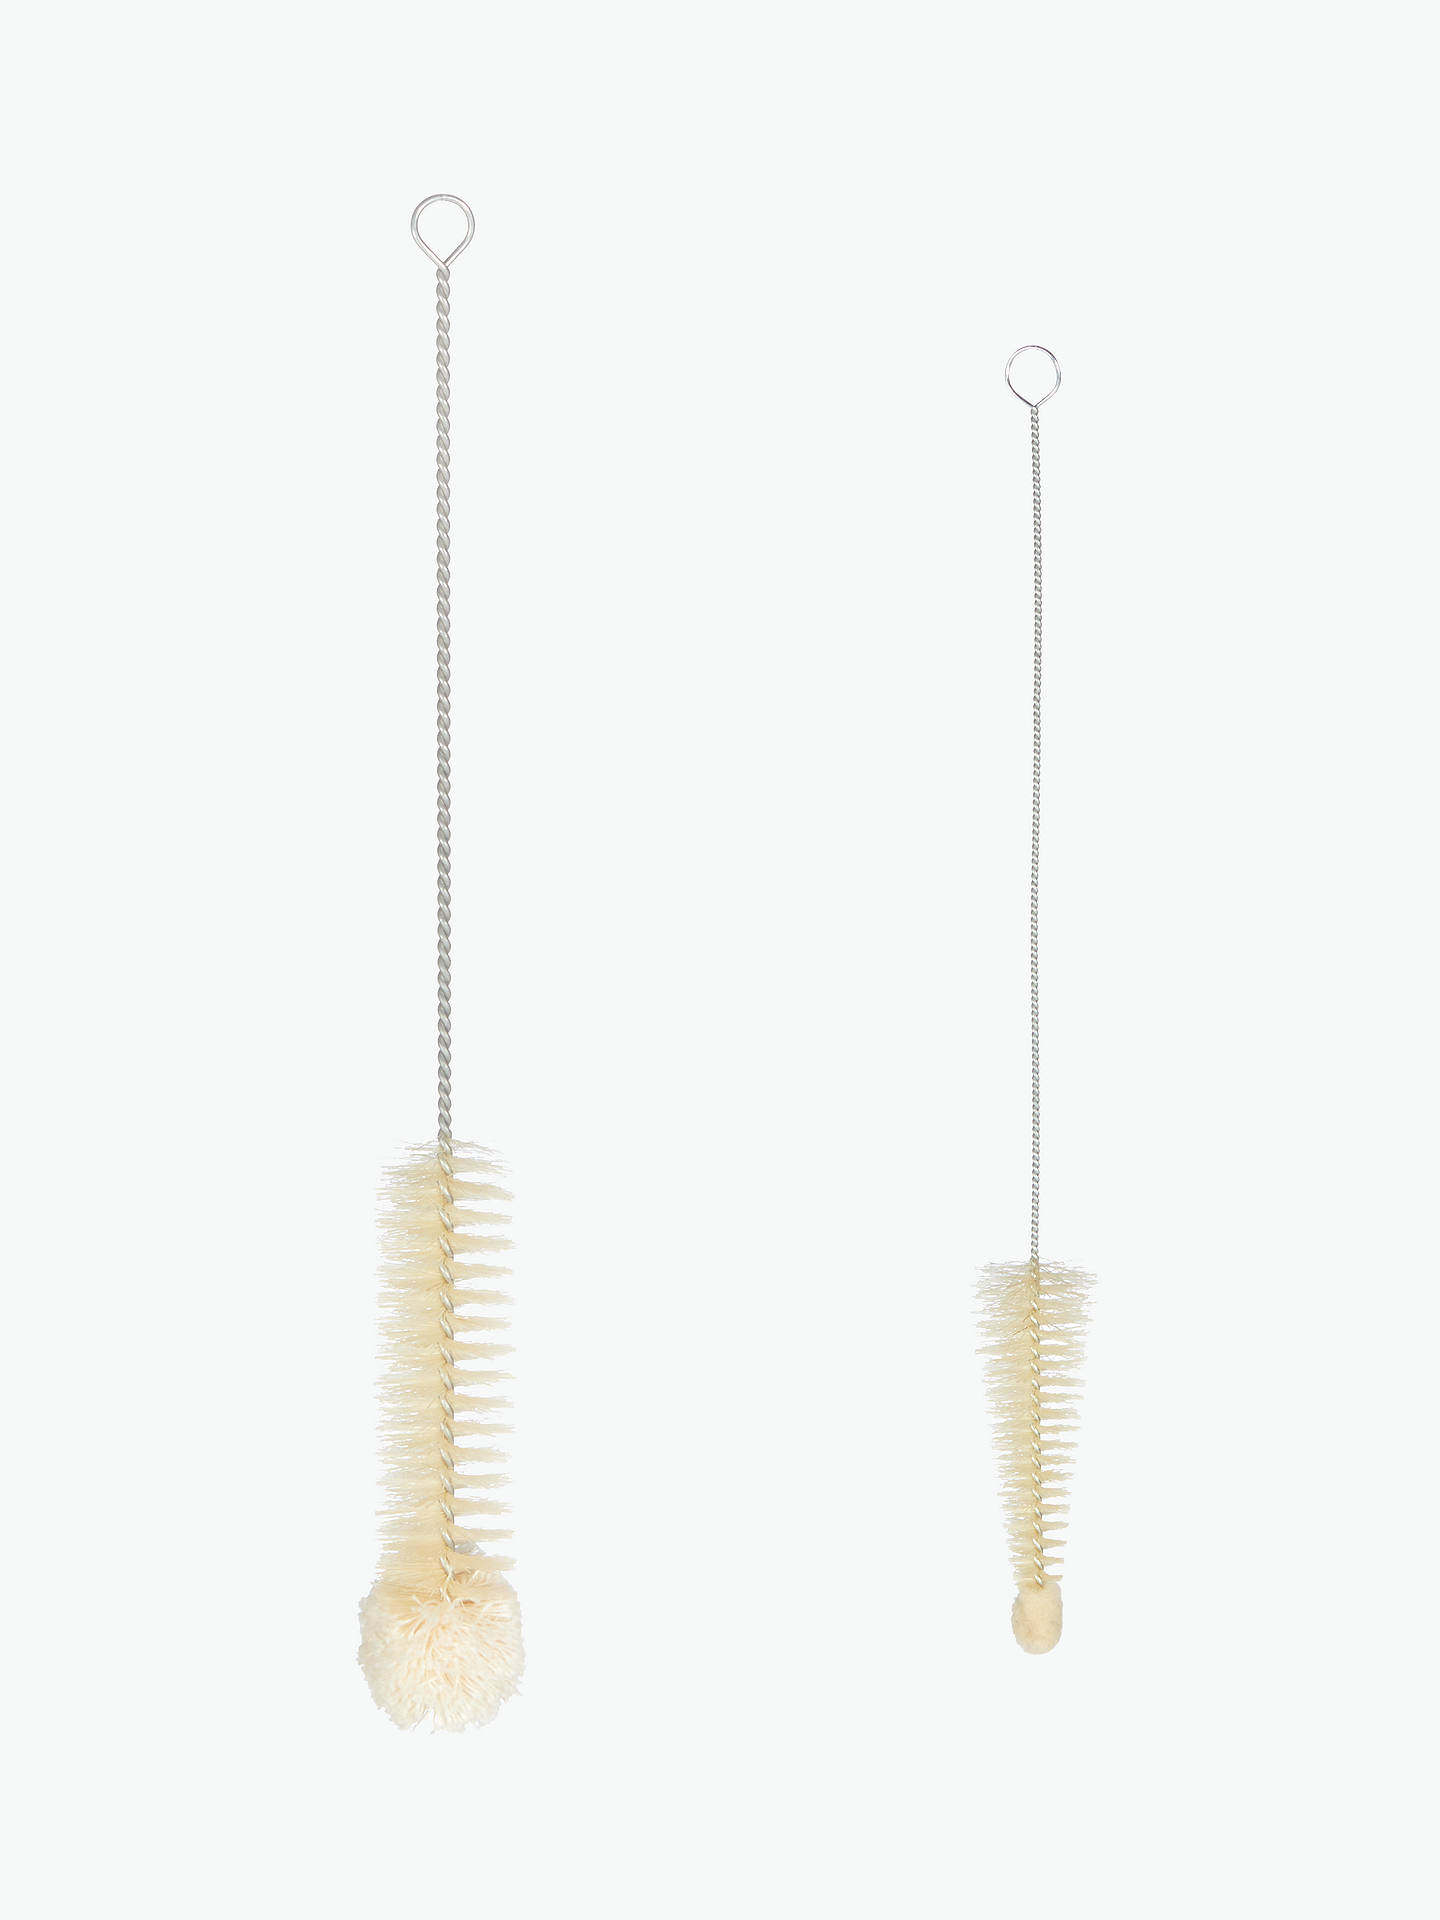 BuyRedecker Bottle Brush, Pack of 2 Online at johnlewis.com